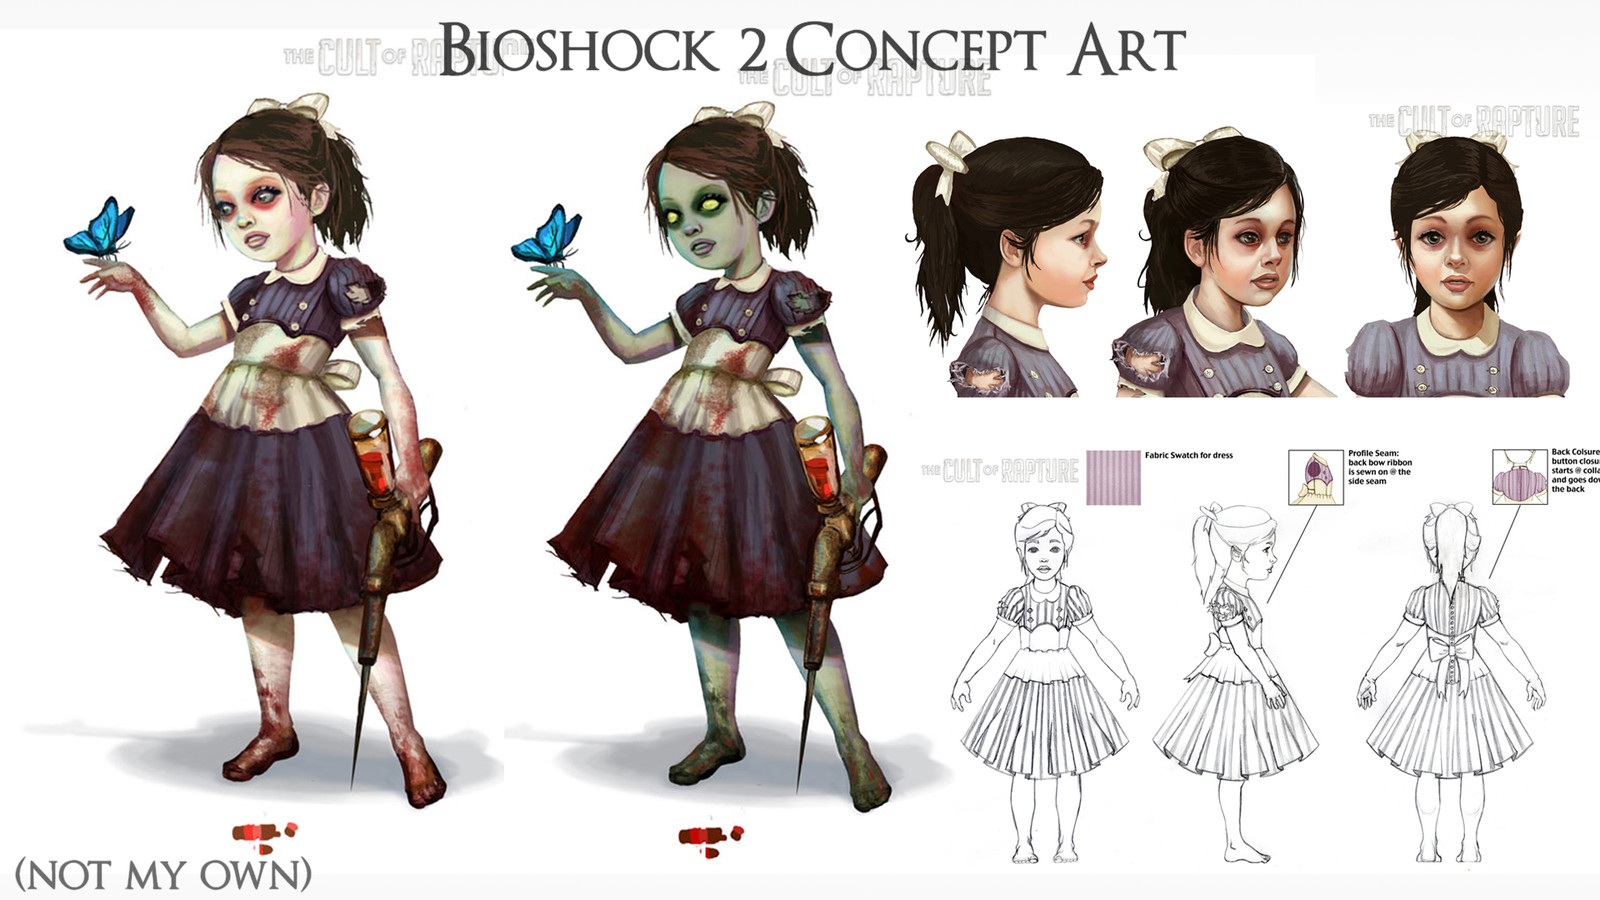 The concept art I based my character on.